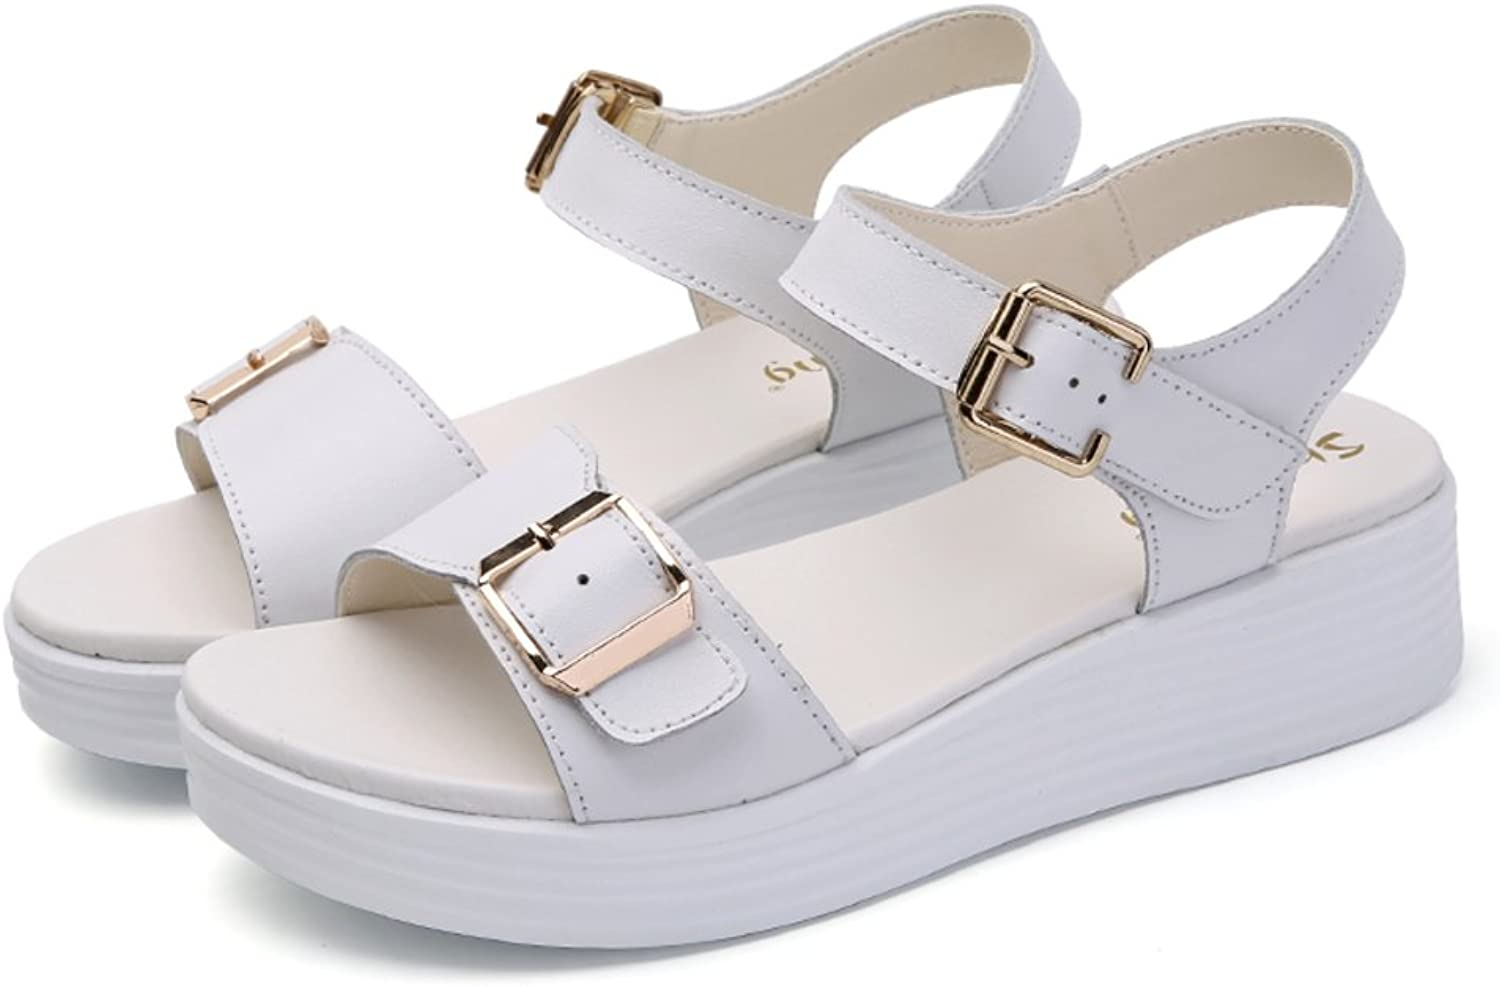 MET RXL Summer,Lady,A Word with,Thick-Soled,Casual shoes Flat,Middle Heel Sandals